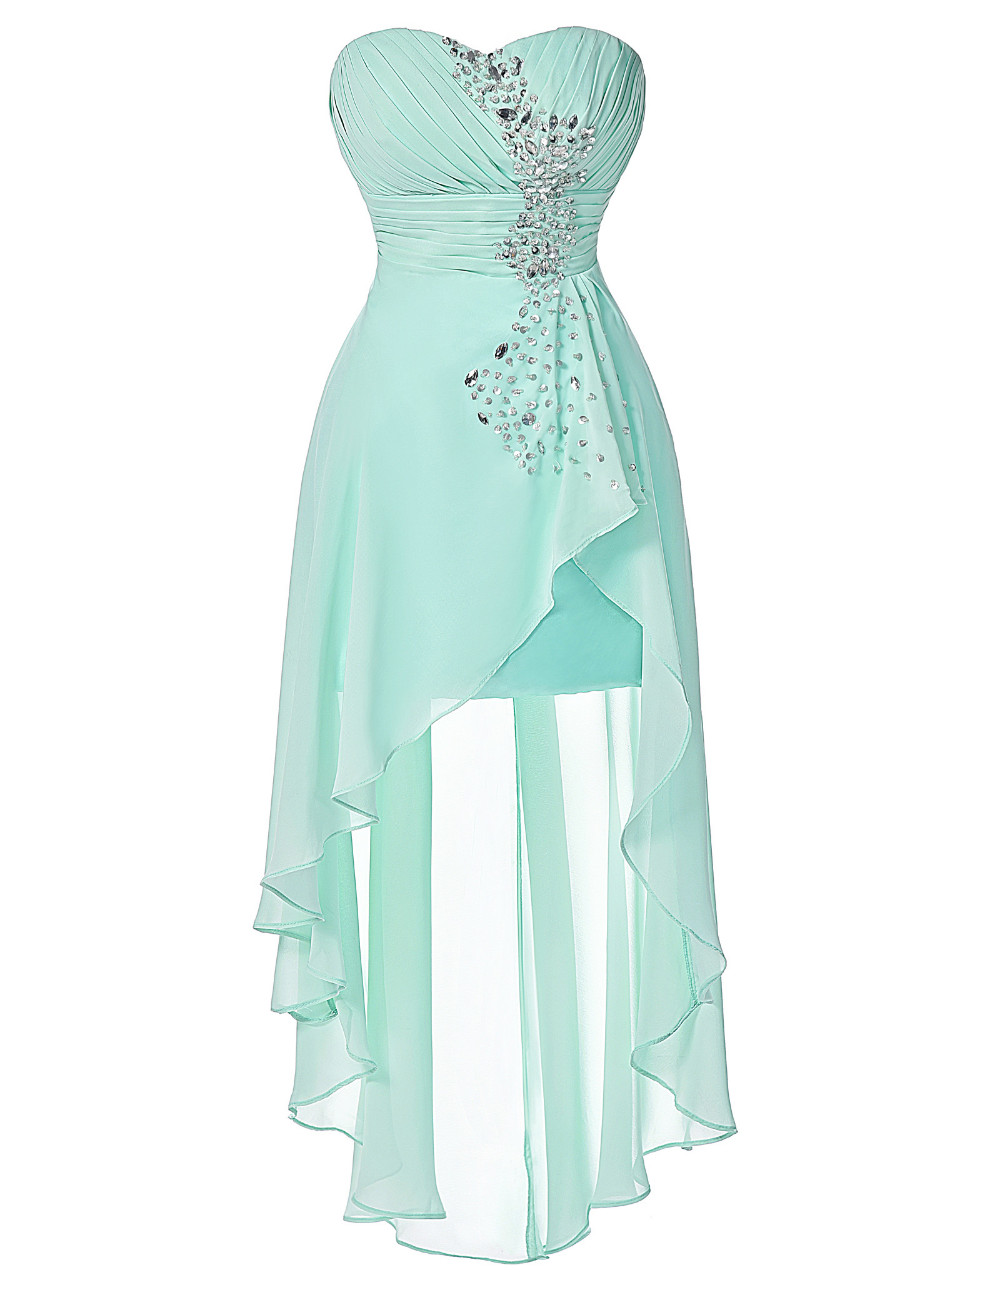 High Low Bridesmaid Dress 2017 Short Front Long Back Prom Gown Strapless Bead Sequin Pink Turquoise Bridesmaid Dress Grace Karin 15